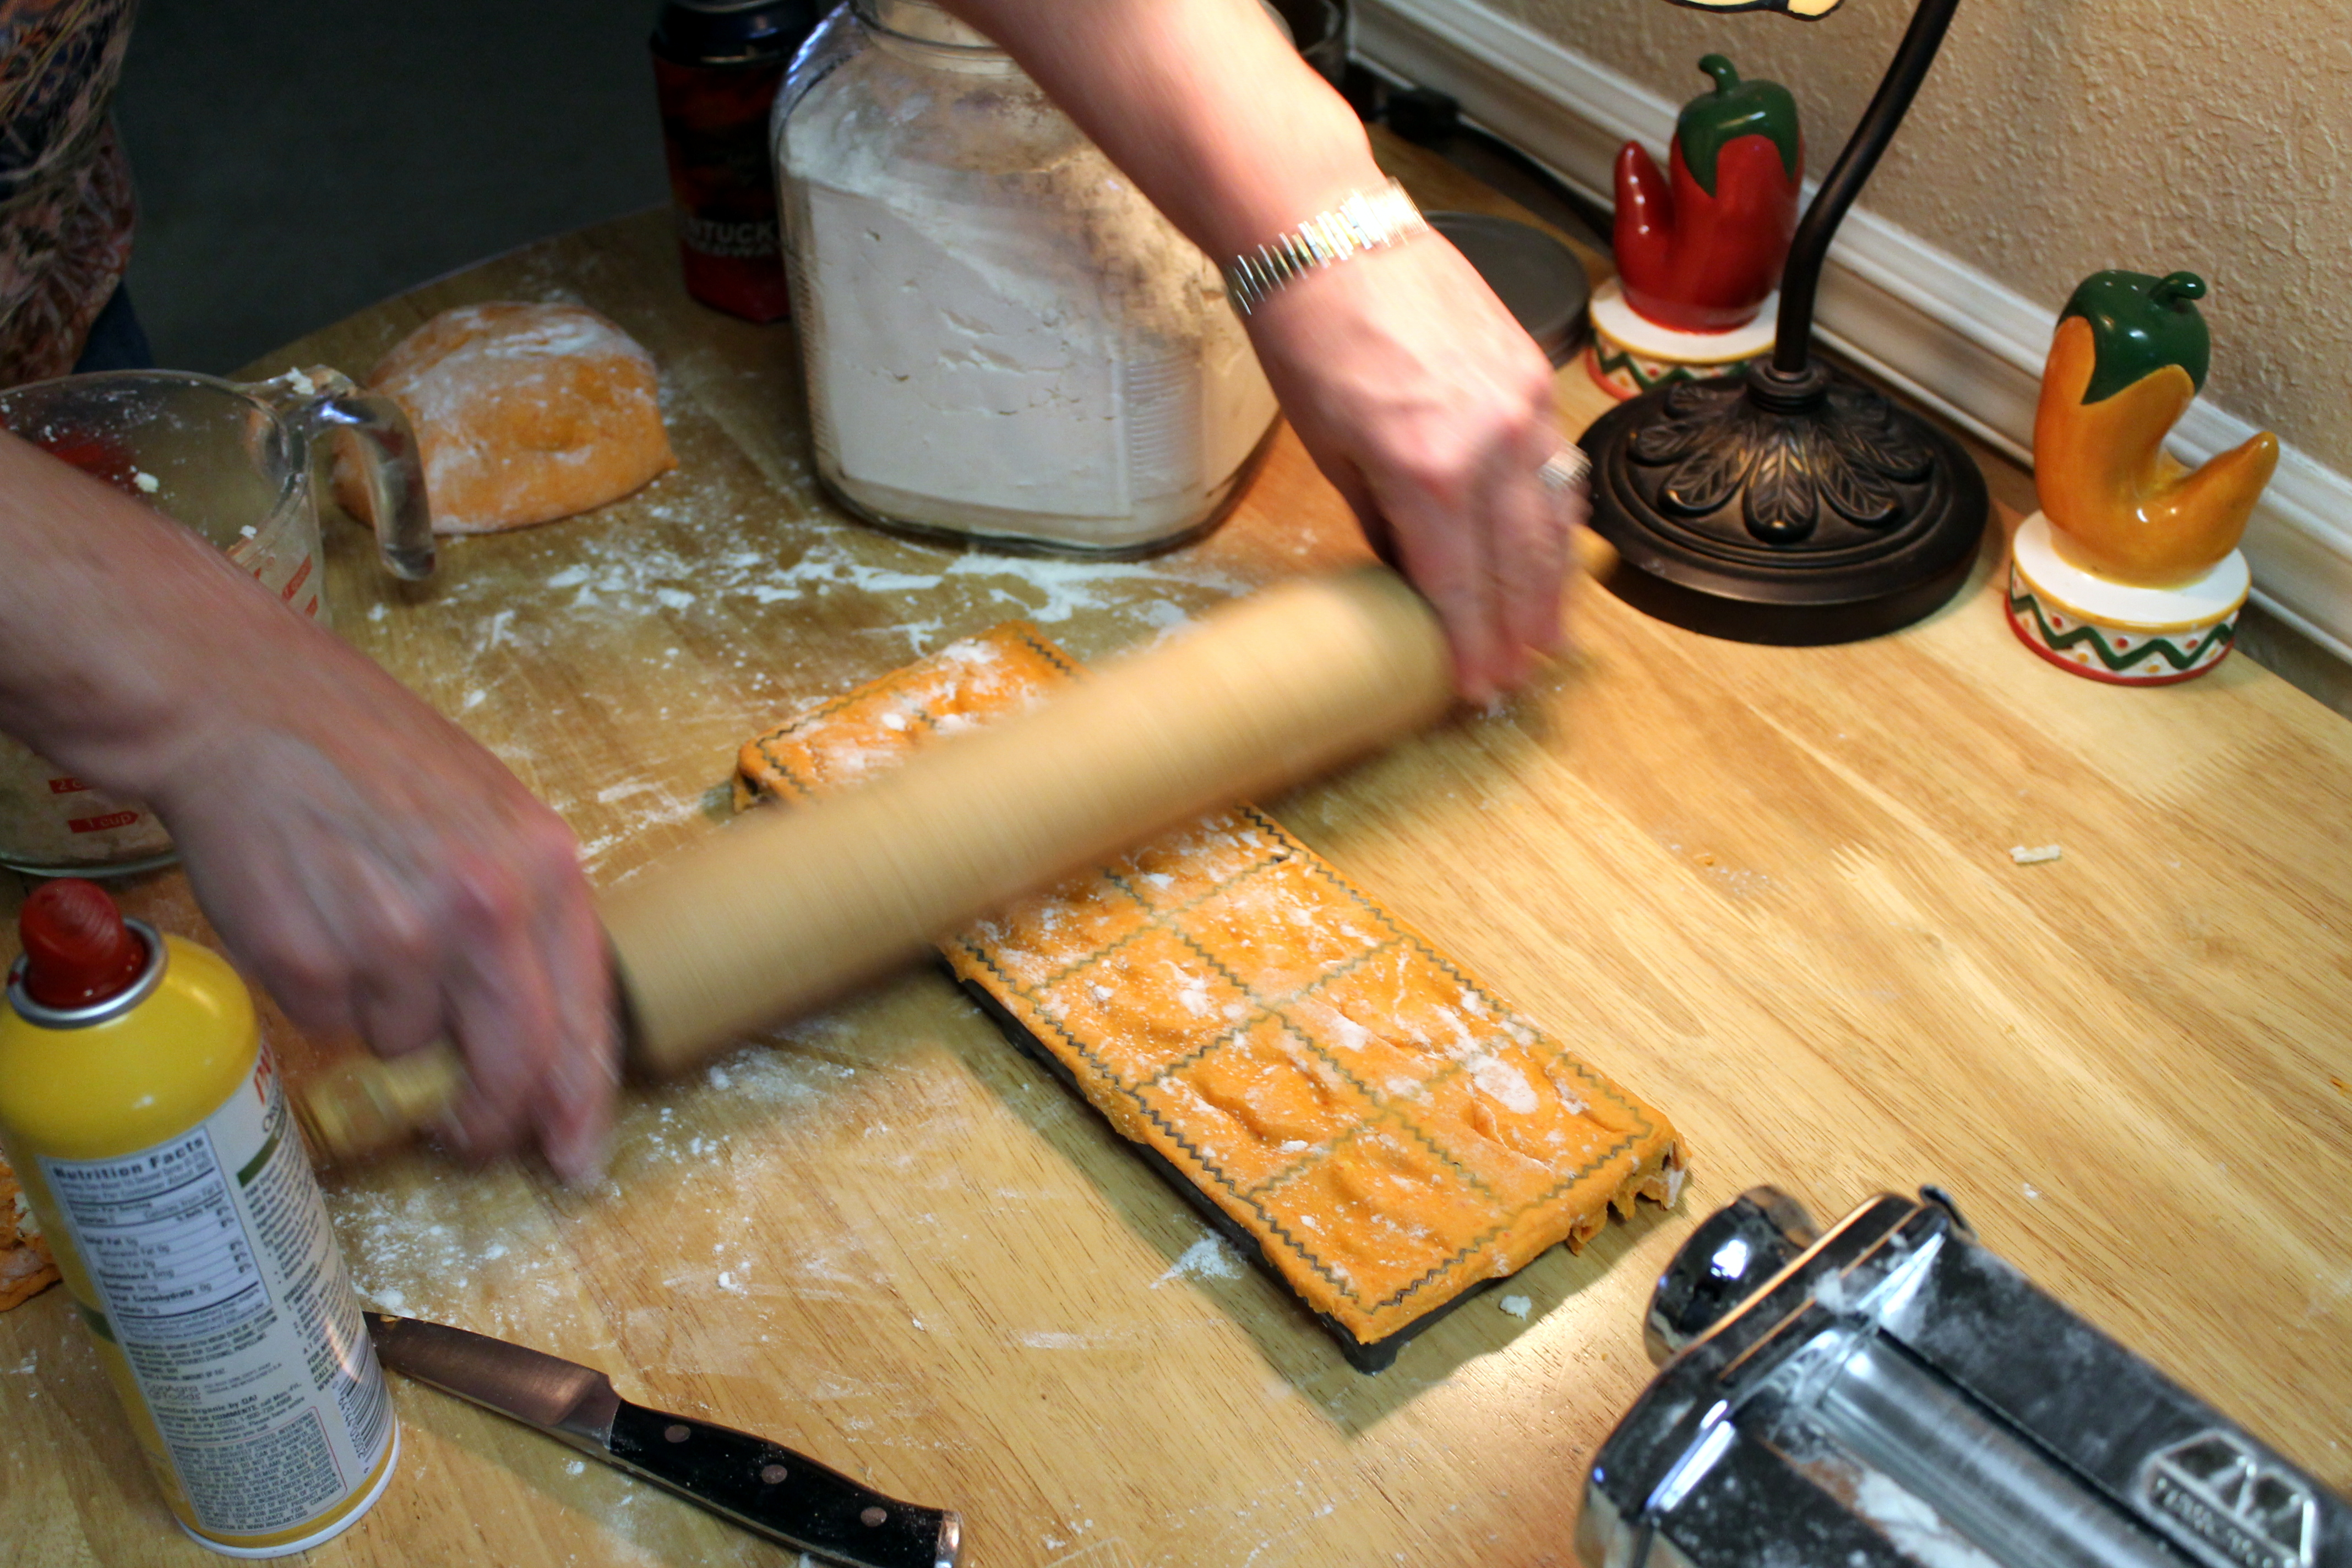 We filled the ravioli and prepared to take the lovely pasta pillows out of the maker...